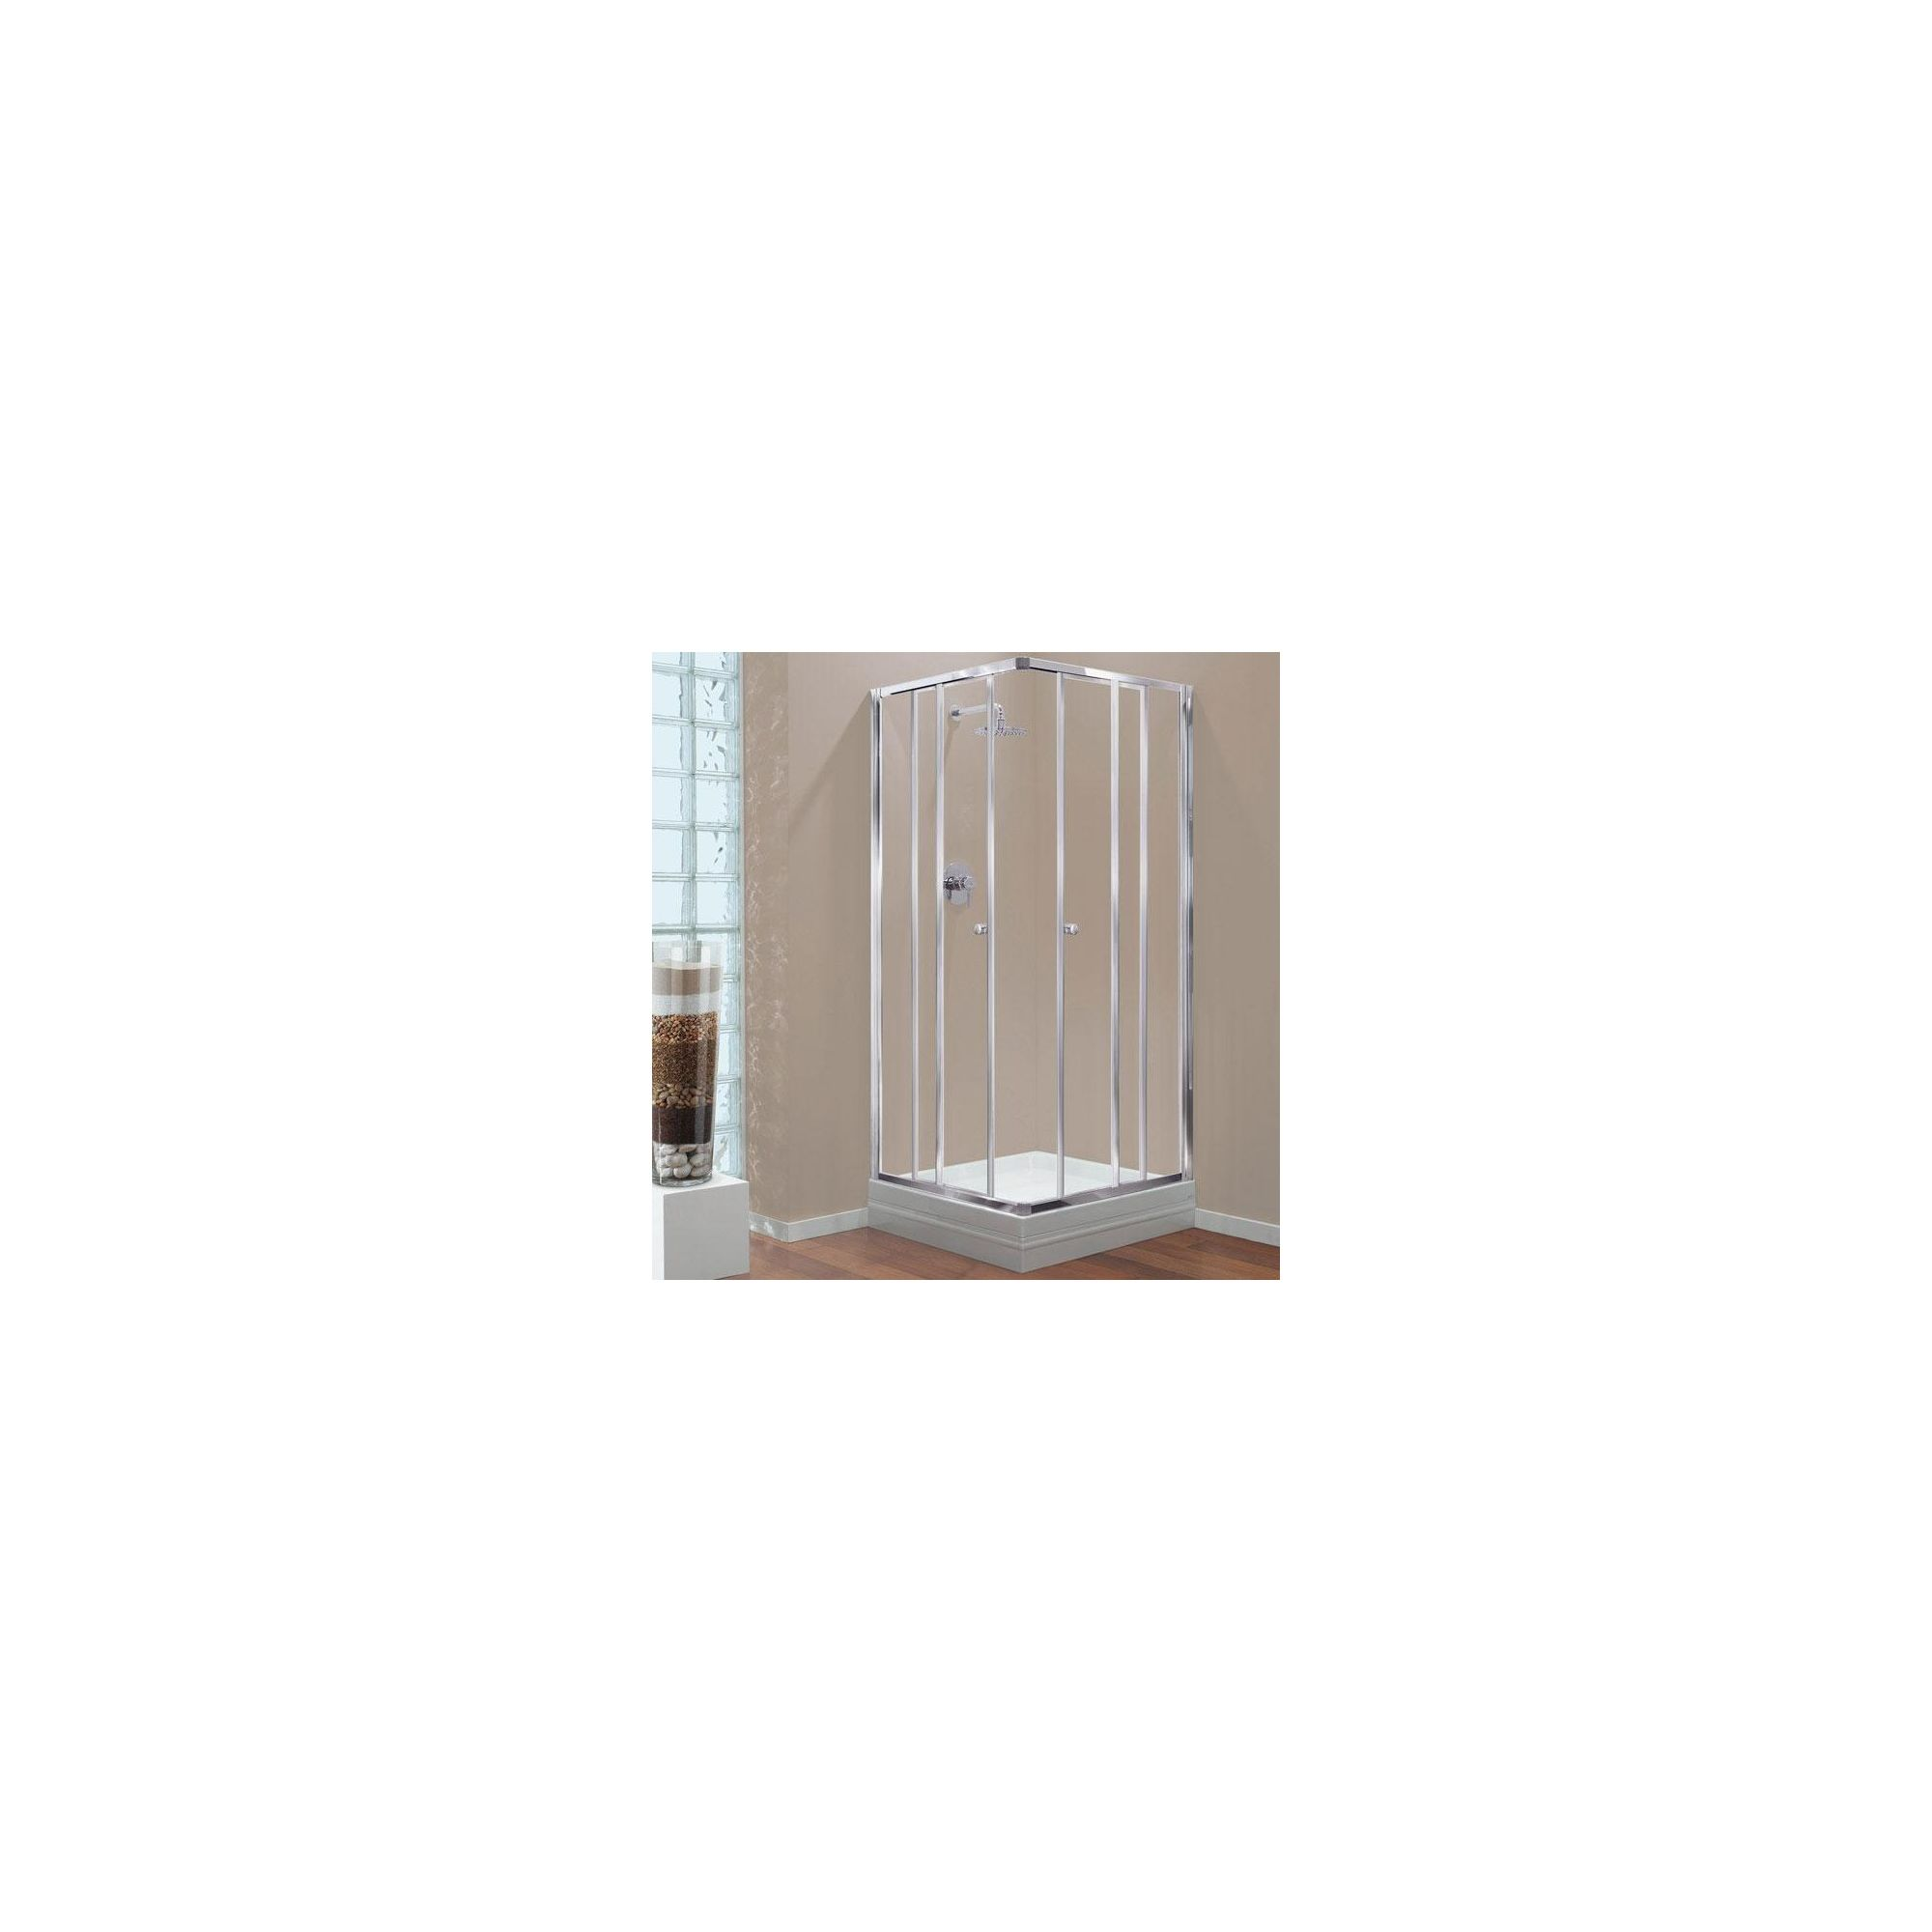 Coram GB Corner Entry Door Shower Enclosure, 760mm x 760mm, Standard Tray, 4mm Glass, Chrome Frame at Tesco Direct